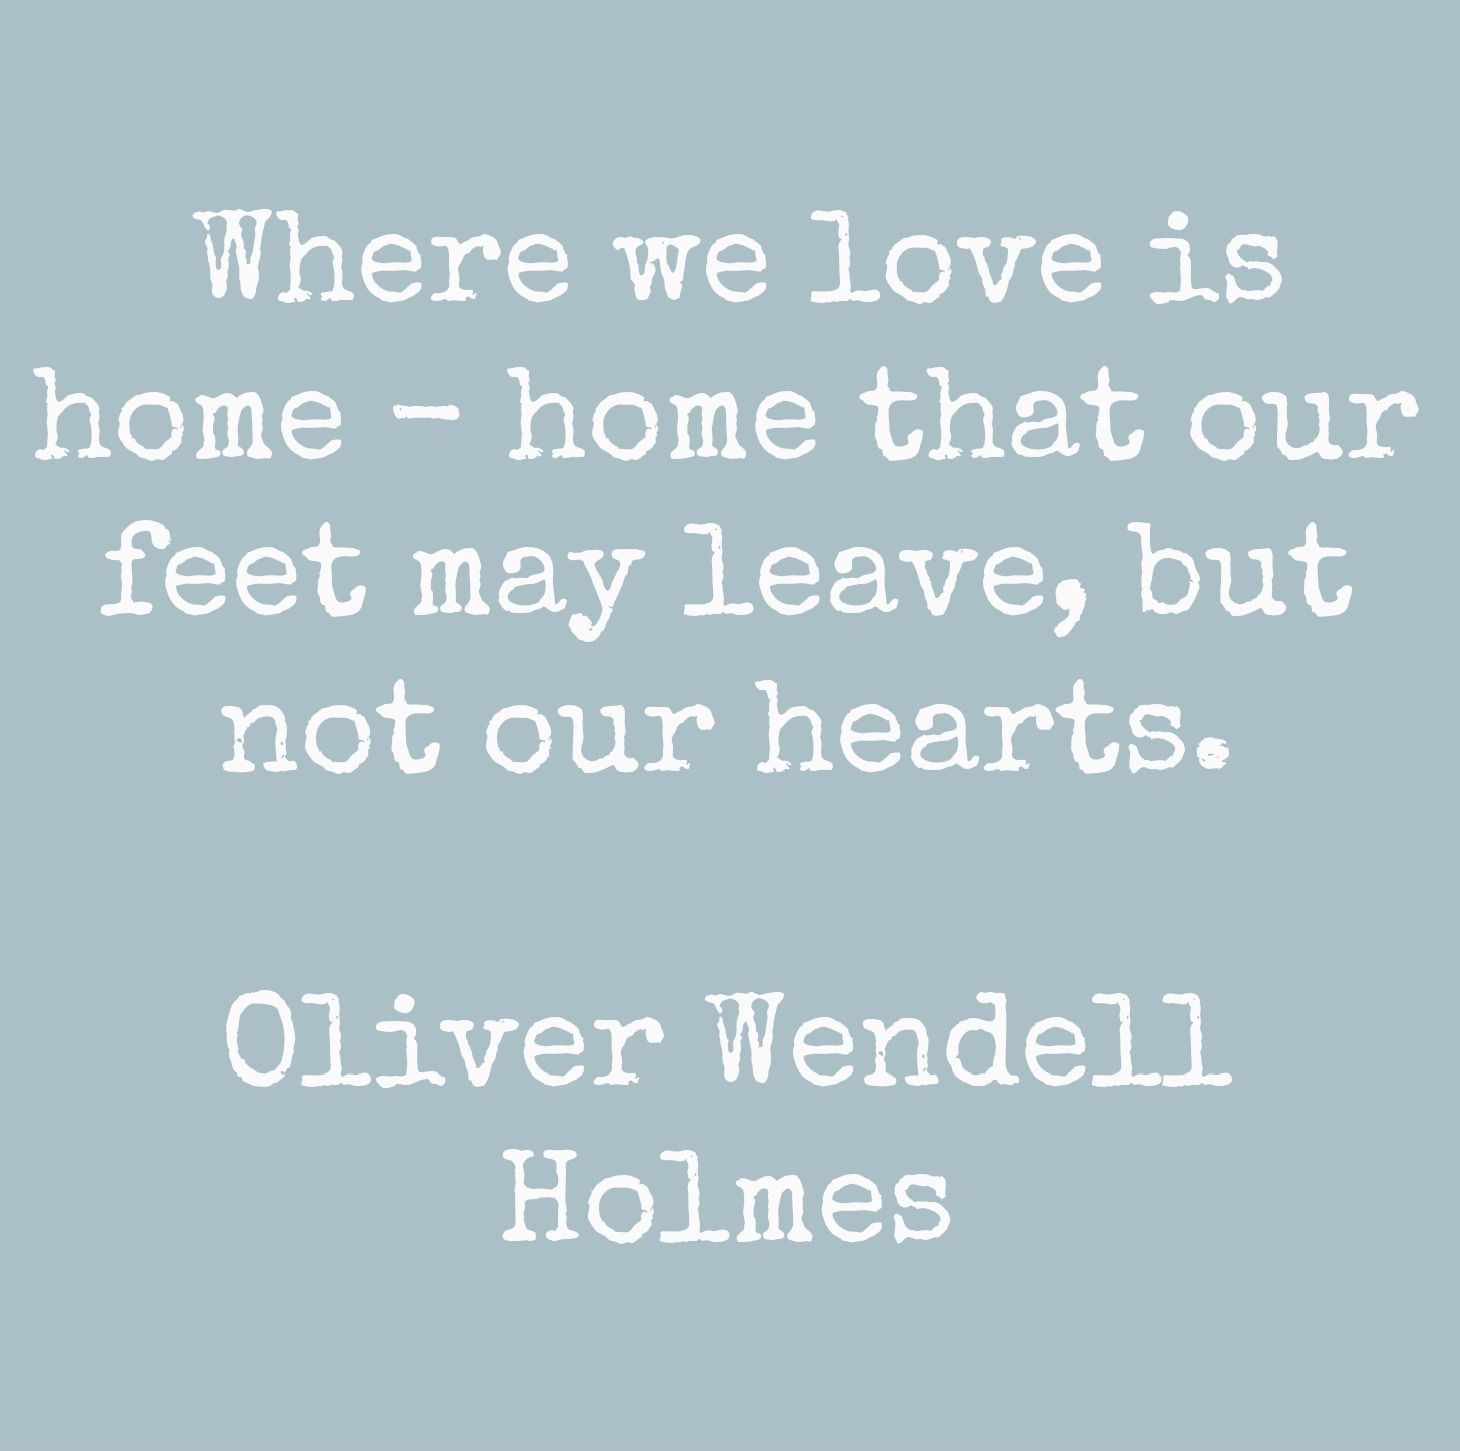 Home That Our Feet May Leave But Not Our Hearts Home Quotes And Sayings Senior Quotes Cool Words